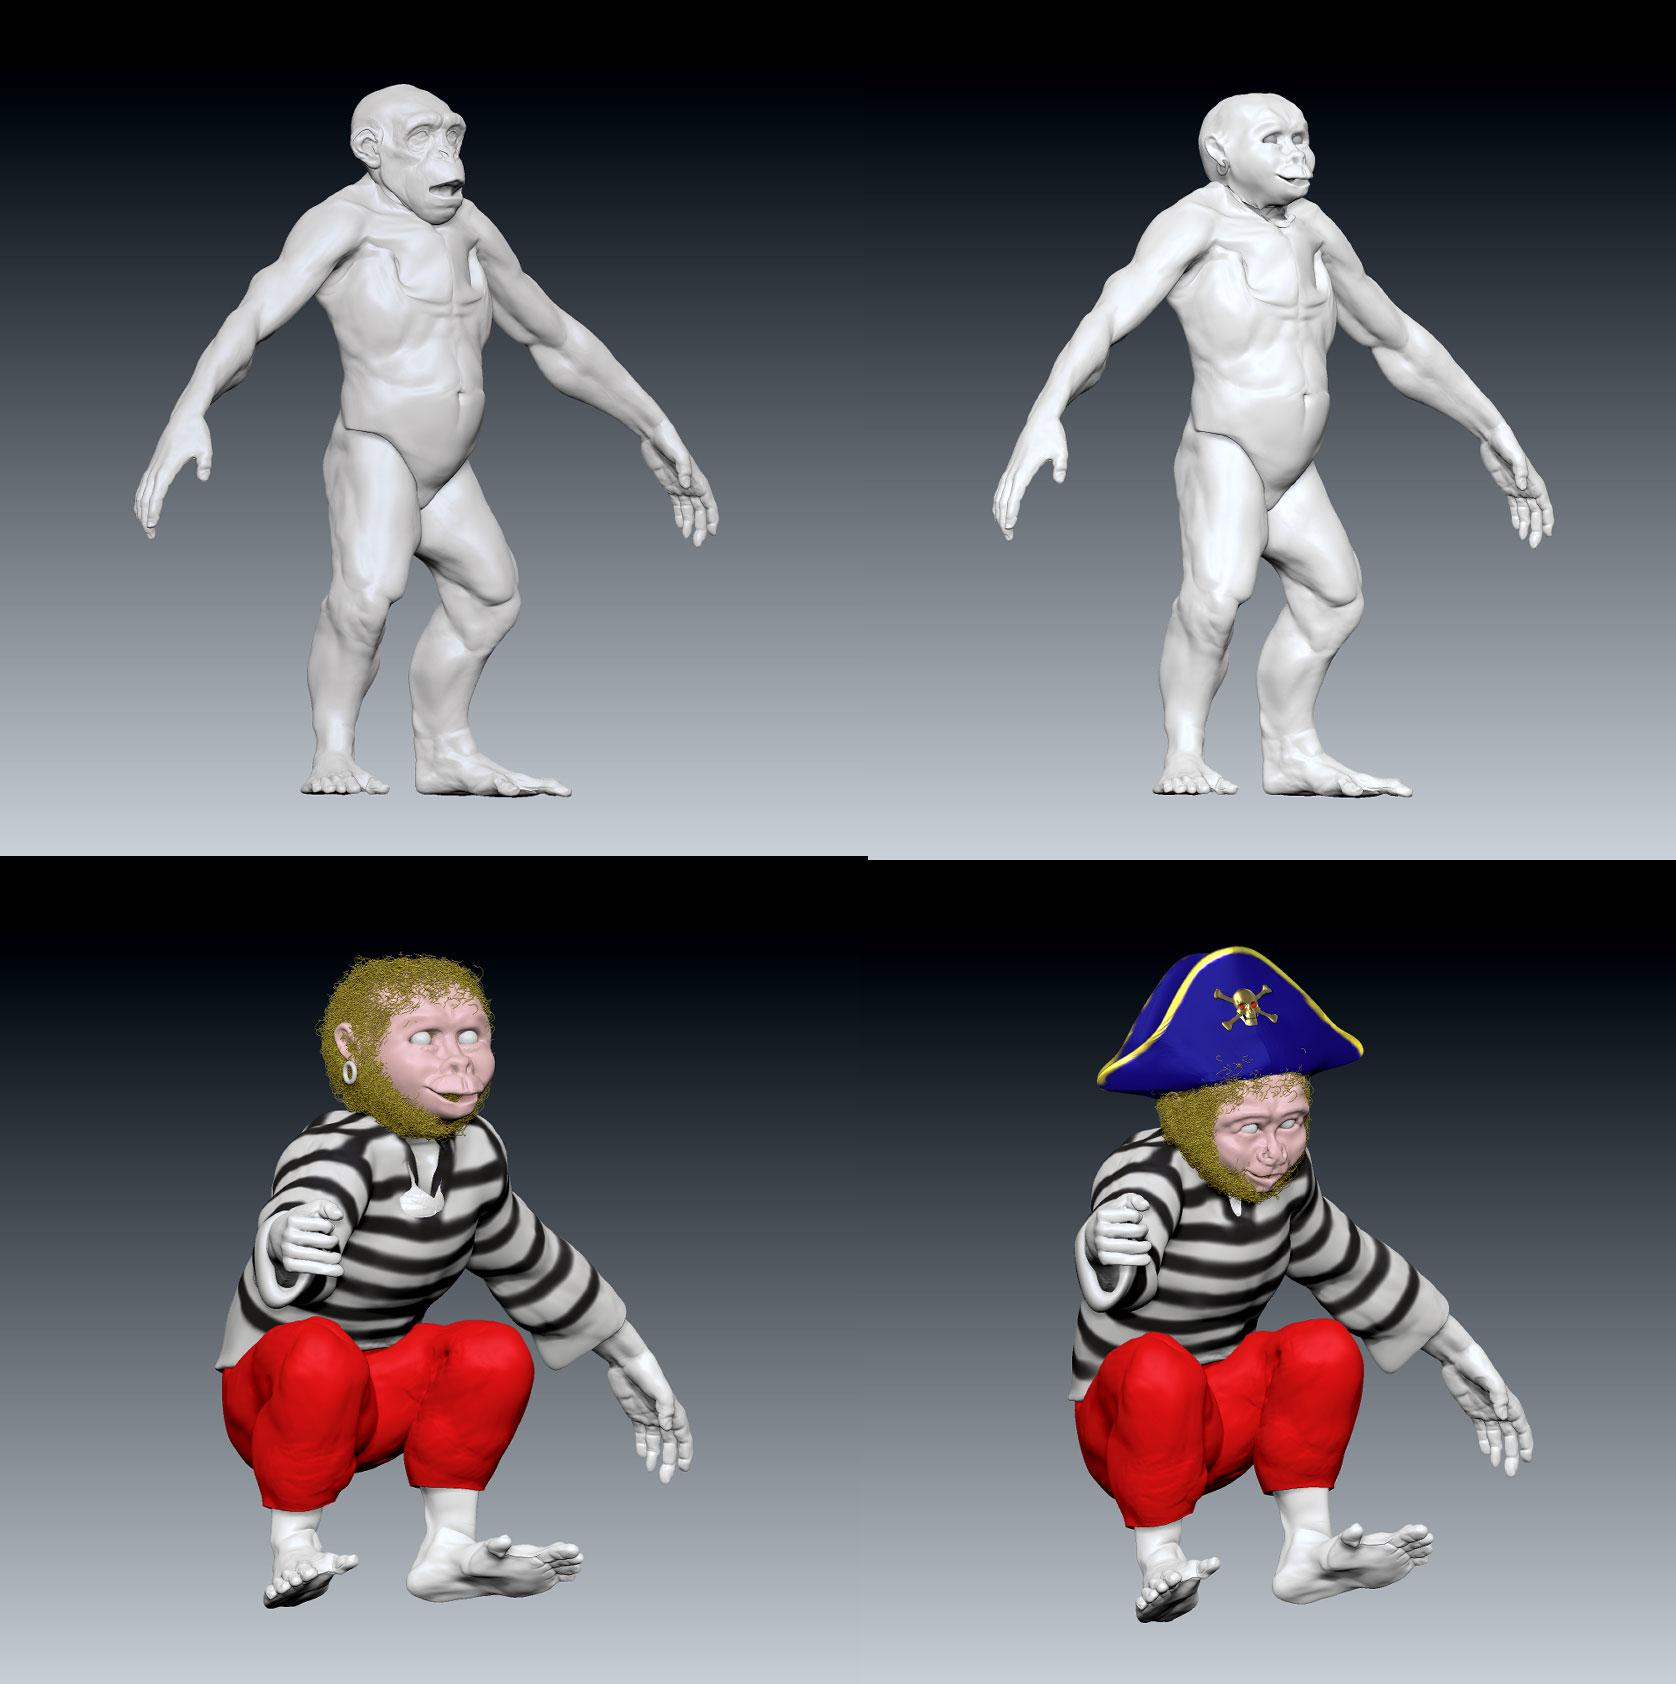 Game-Of-Bones-WIP--Monkey-01-For-Web